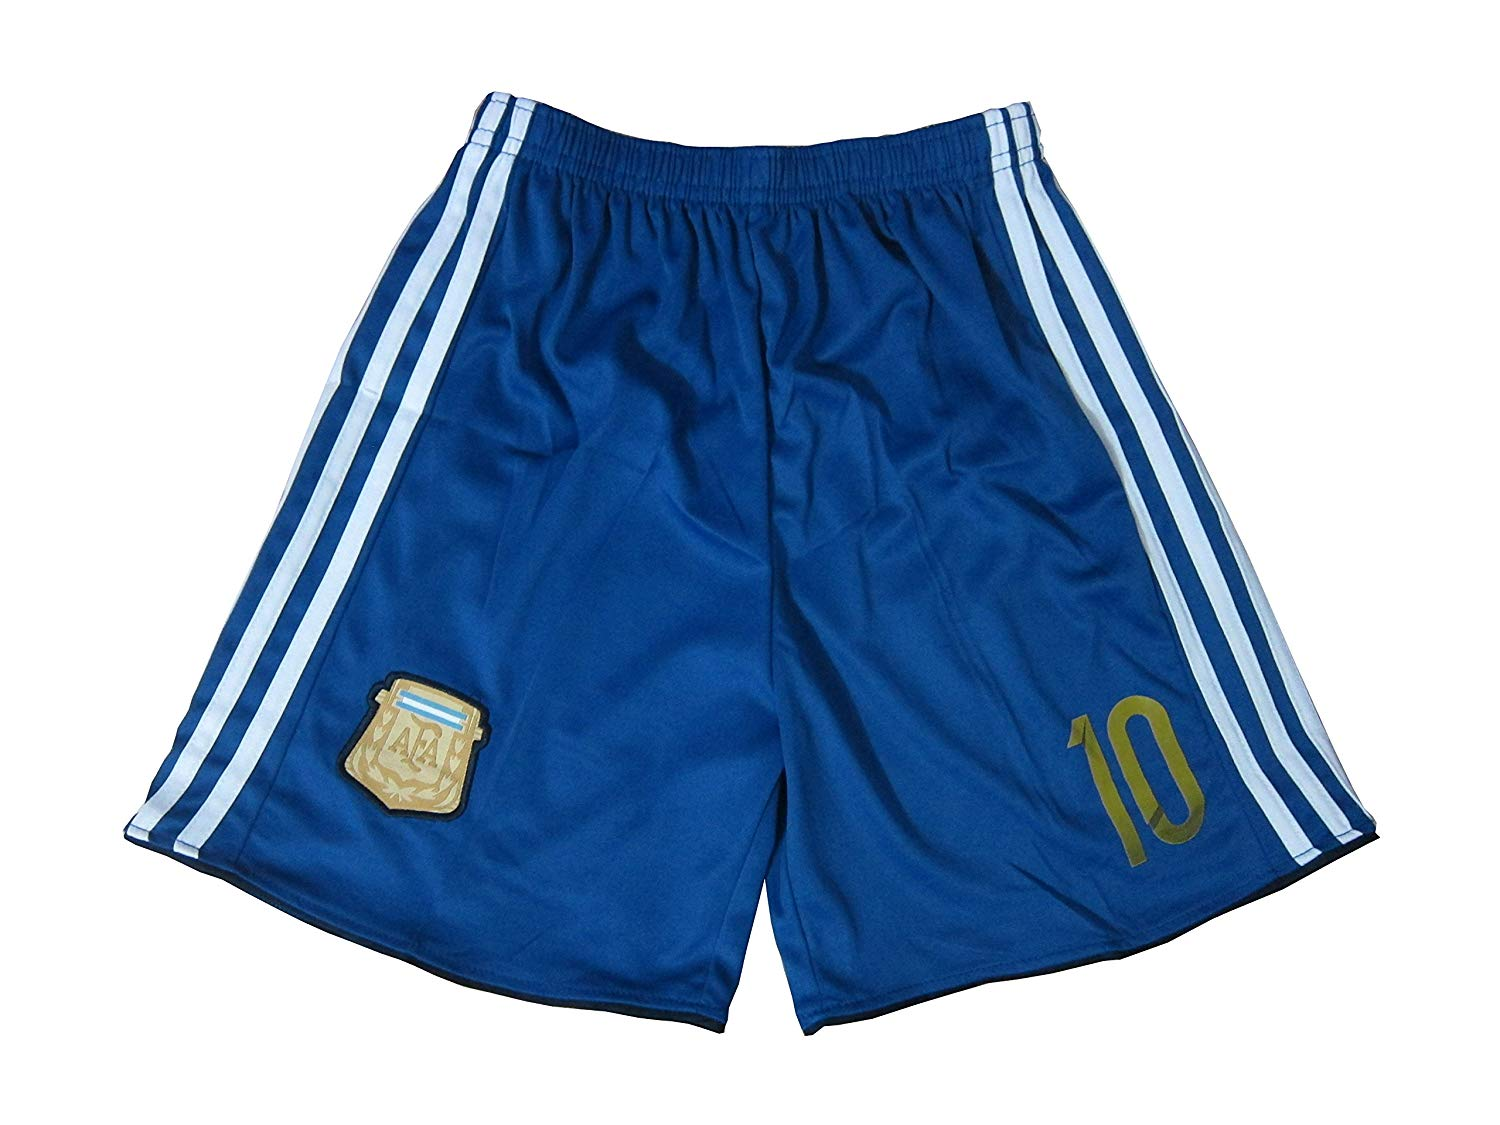 6b9f5a878 KID BOX 2018 Argentina LIONEL MESSI  10 Away Soccer Kids Jersey and Short  Set Youth Sizes